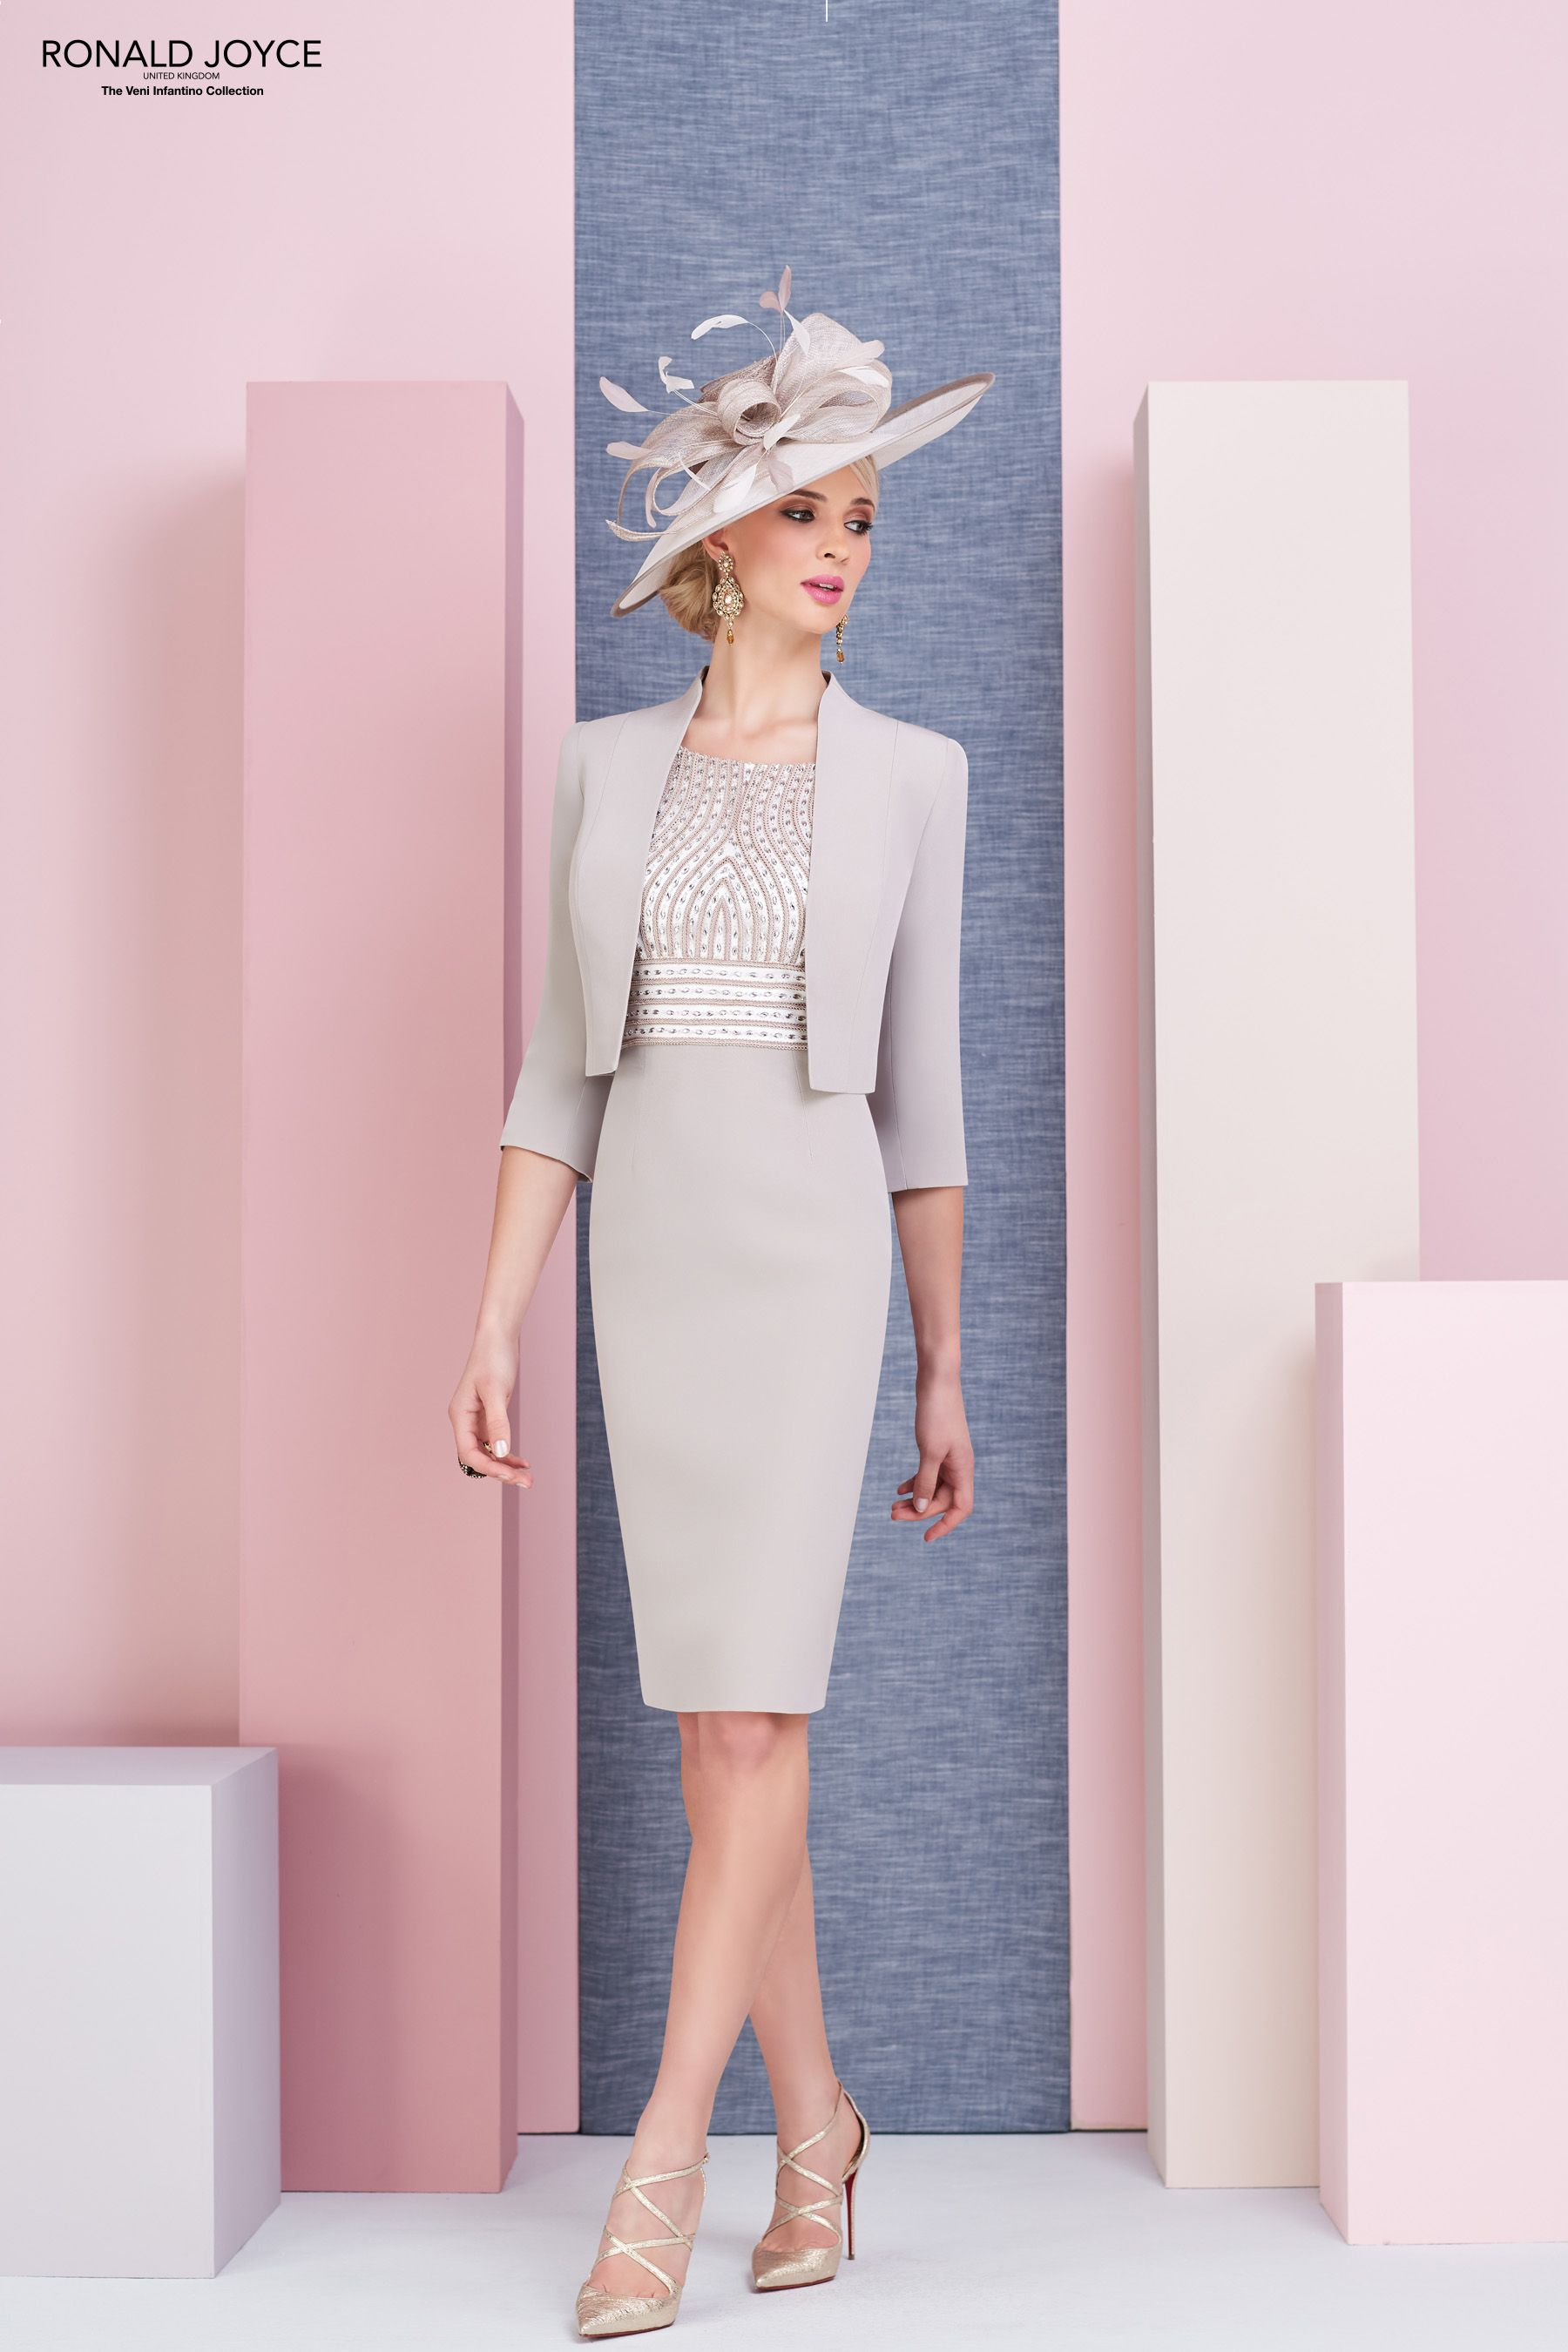 df9b3ae27d9c1 Now instore in sizes 8-14 in Taupe/Ivory The perfect wedding outfit for the  Mother of the Bride and Mother of the Groom. Veni Infantino by Ronald Joyce  ...